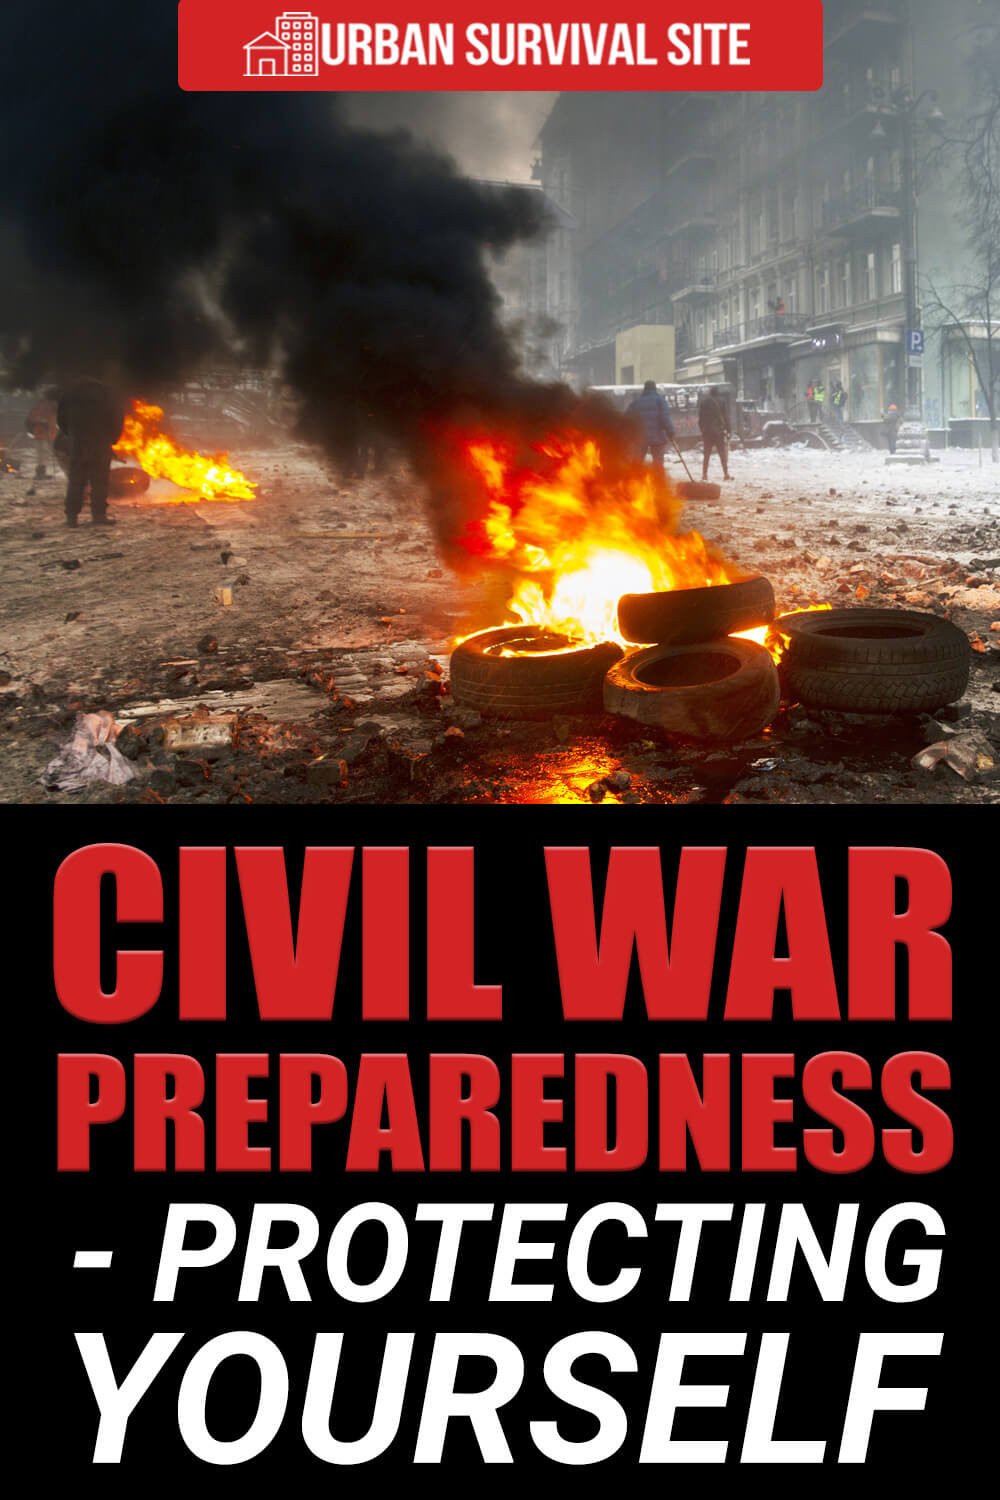 Civil War Preparedness - Part 3: Protecting Yourself